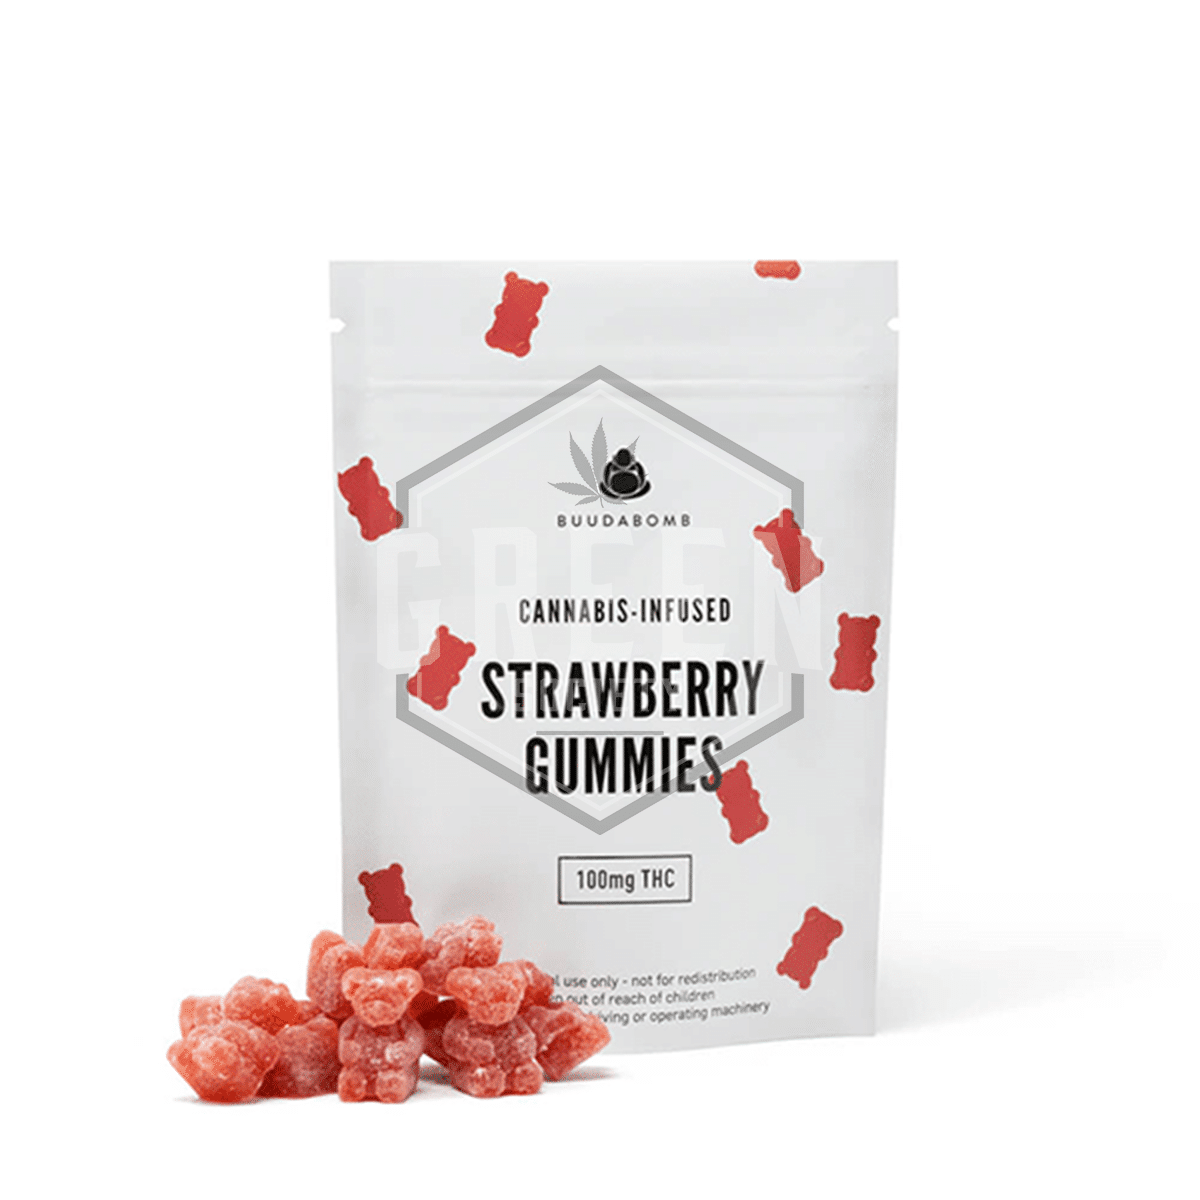 Strawberry Gummies by Buuda Bomb by Green Society - Image © 2018 Green Society. All Rights Reserved.